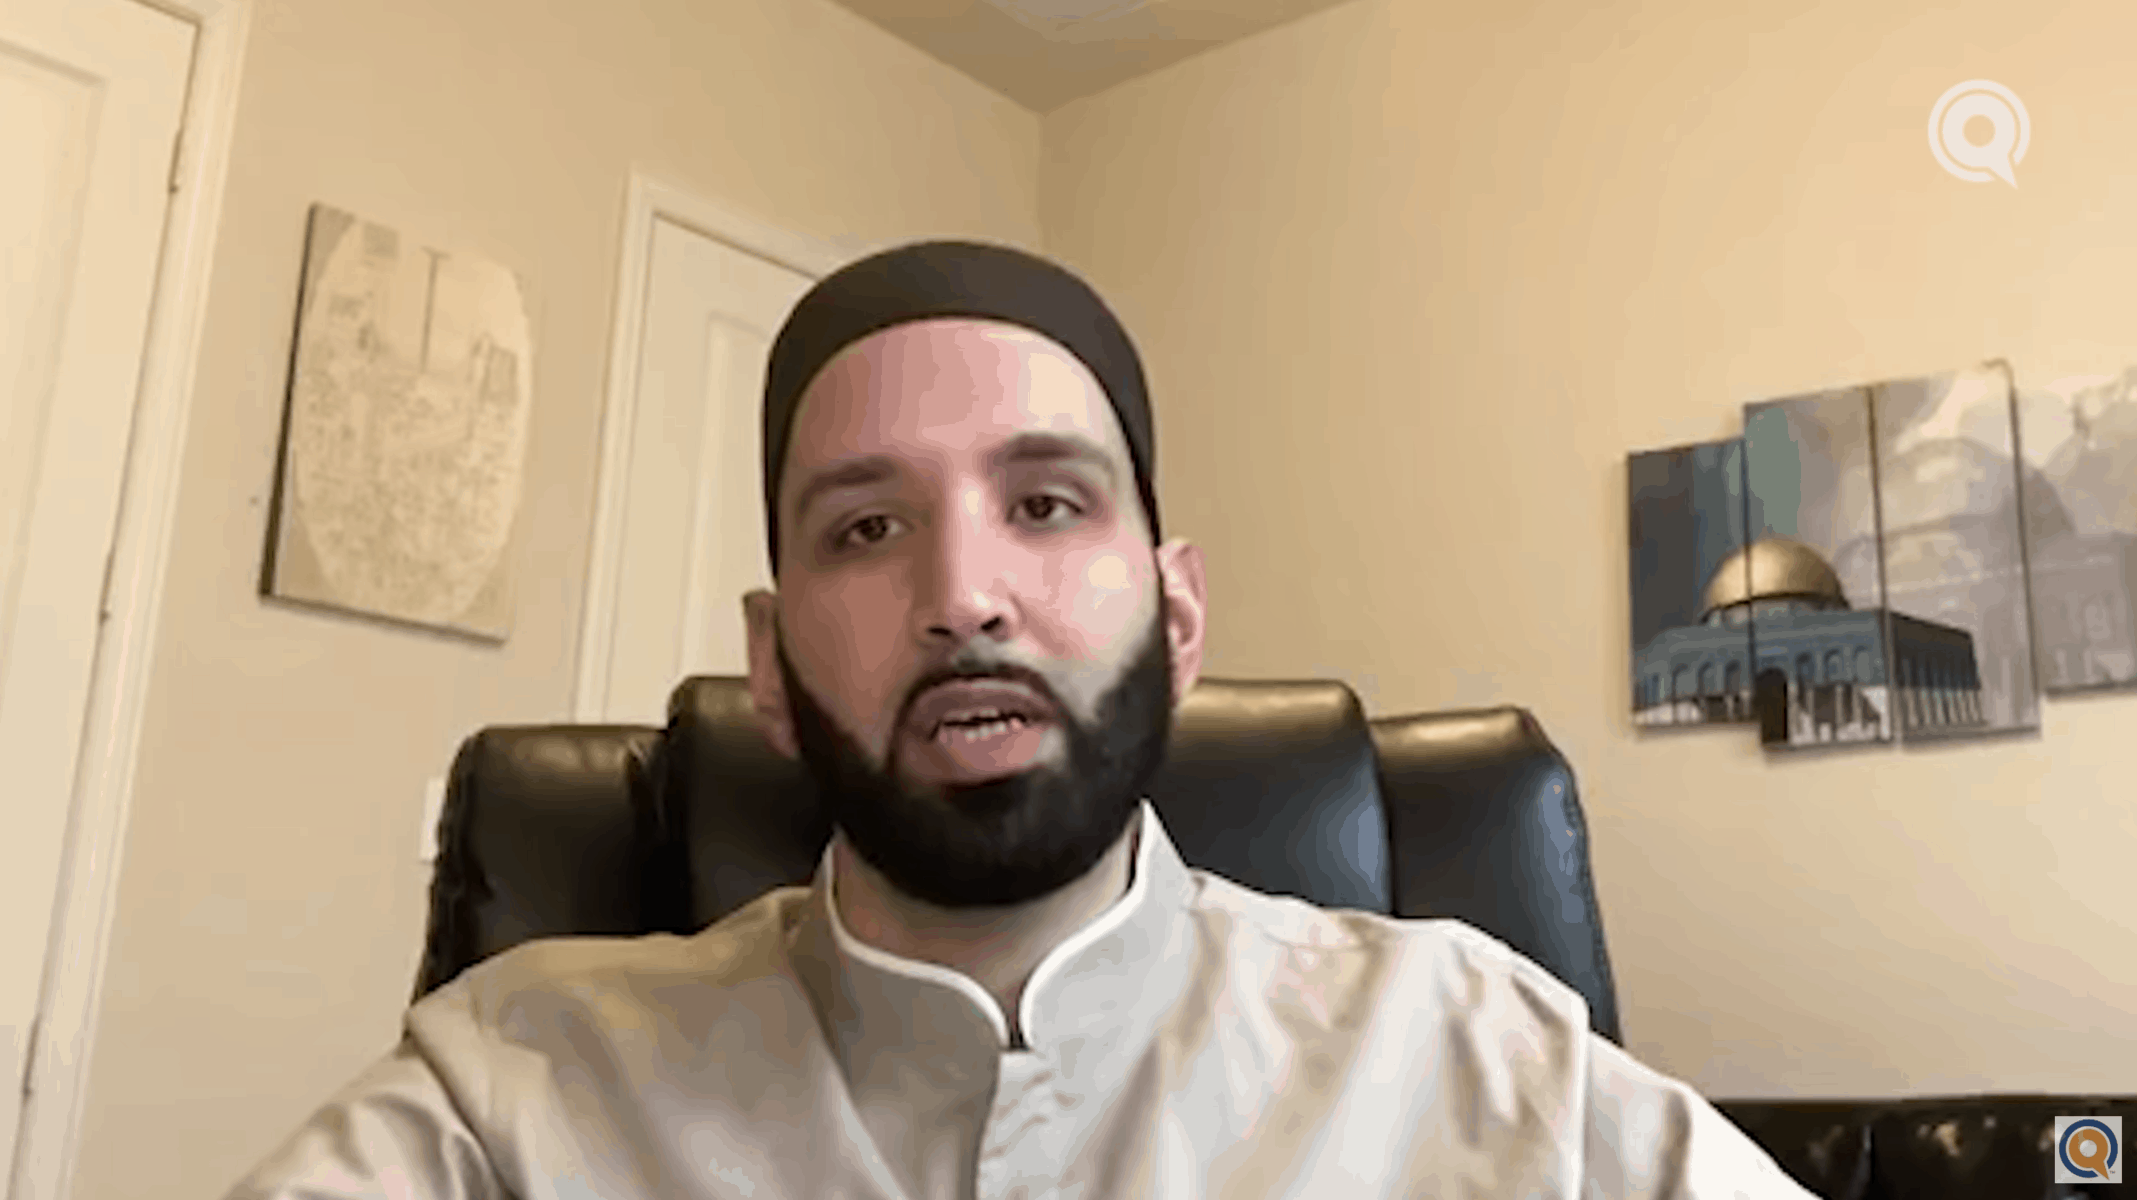 Omar Suleiman – Consuming Too Much Bad News and the Danger of Despair